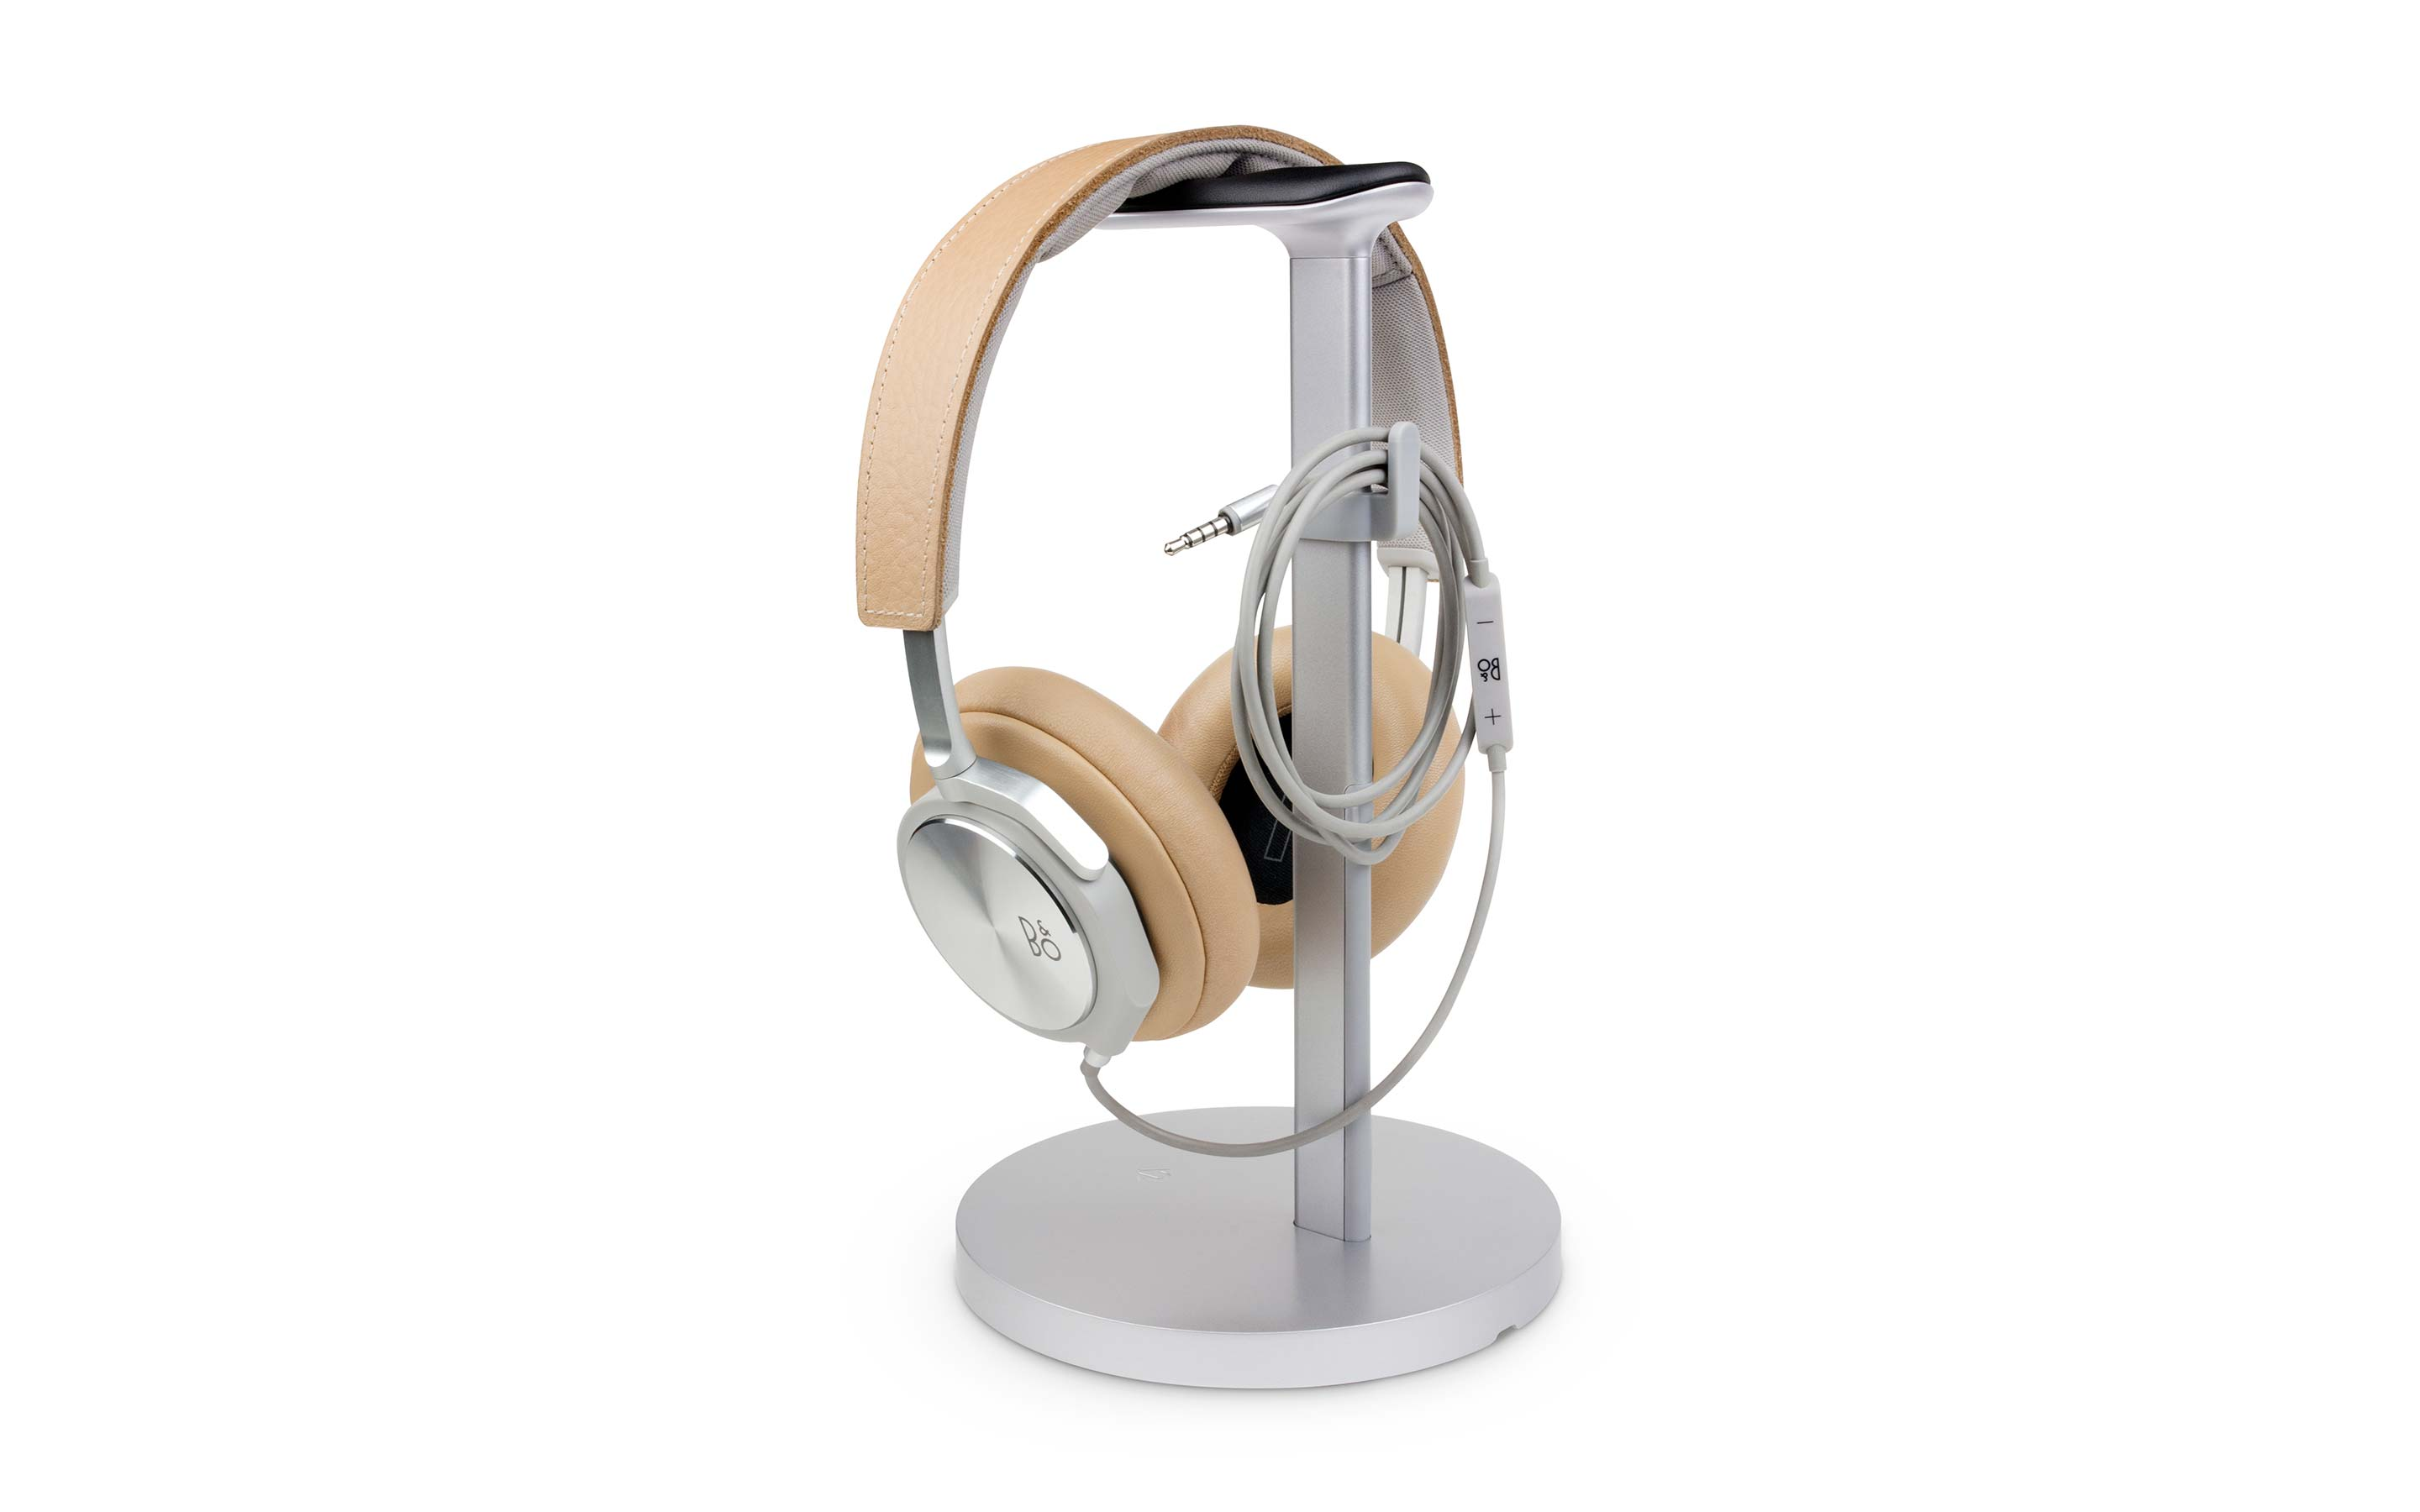 Fermata Headphone Charging Stand